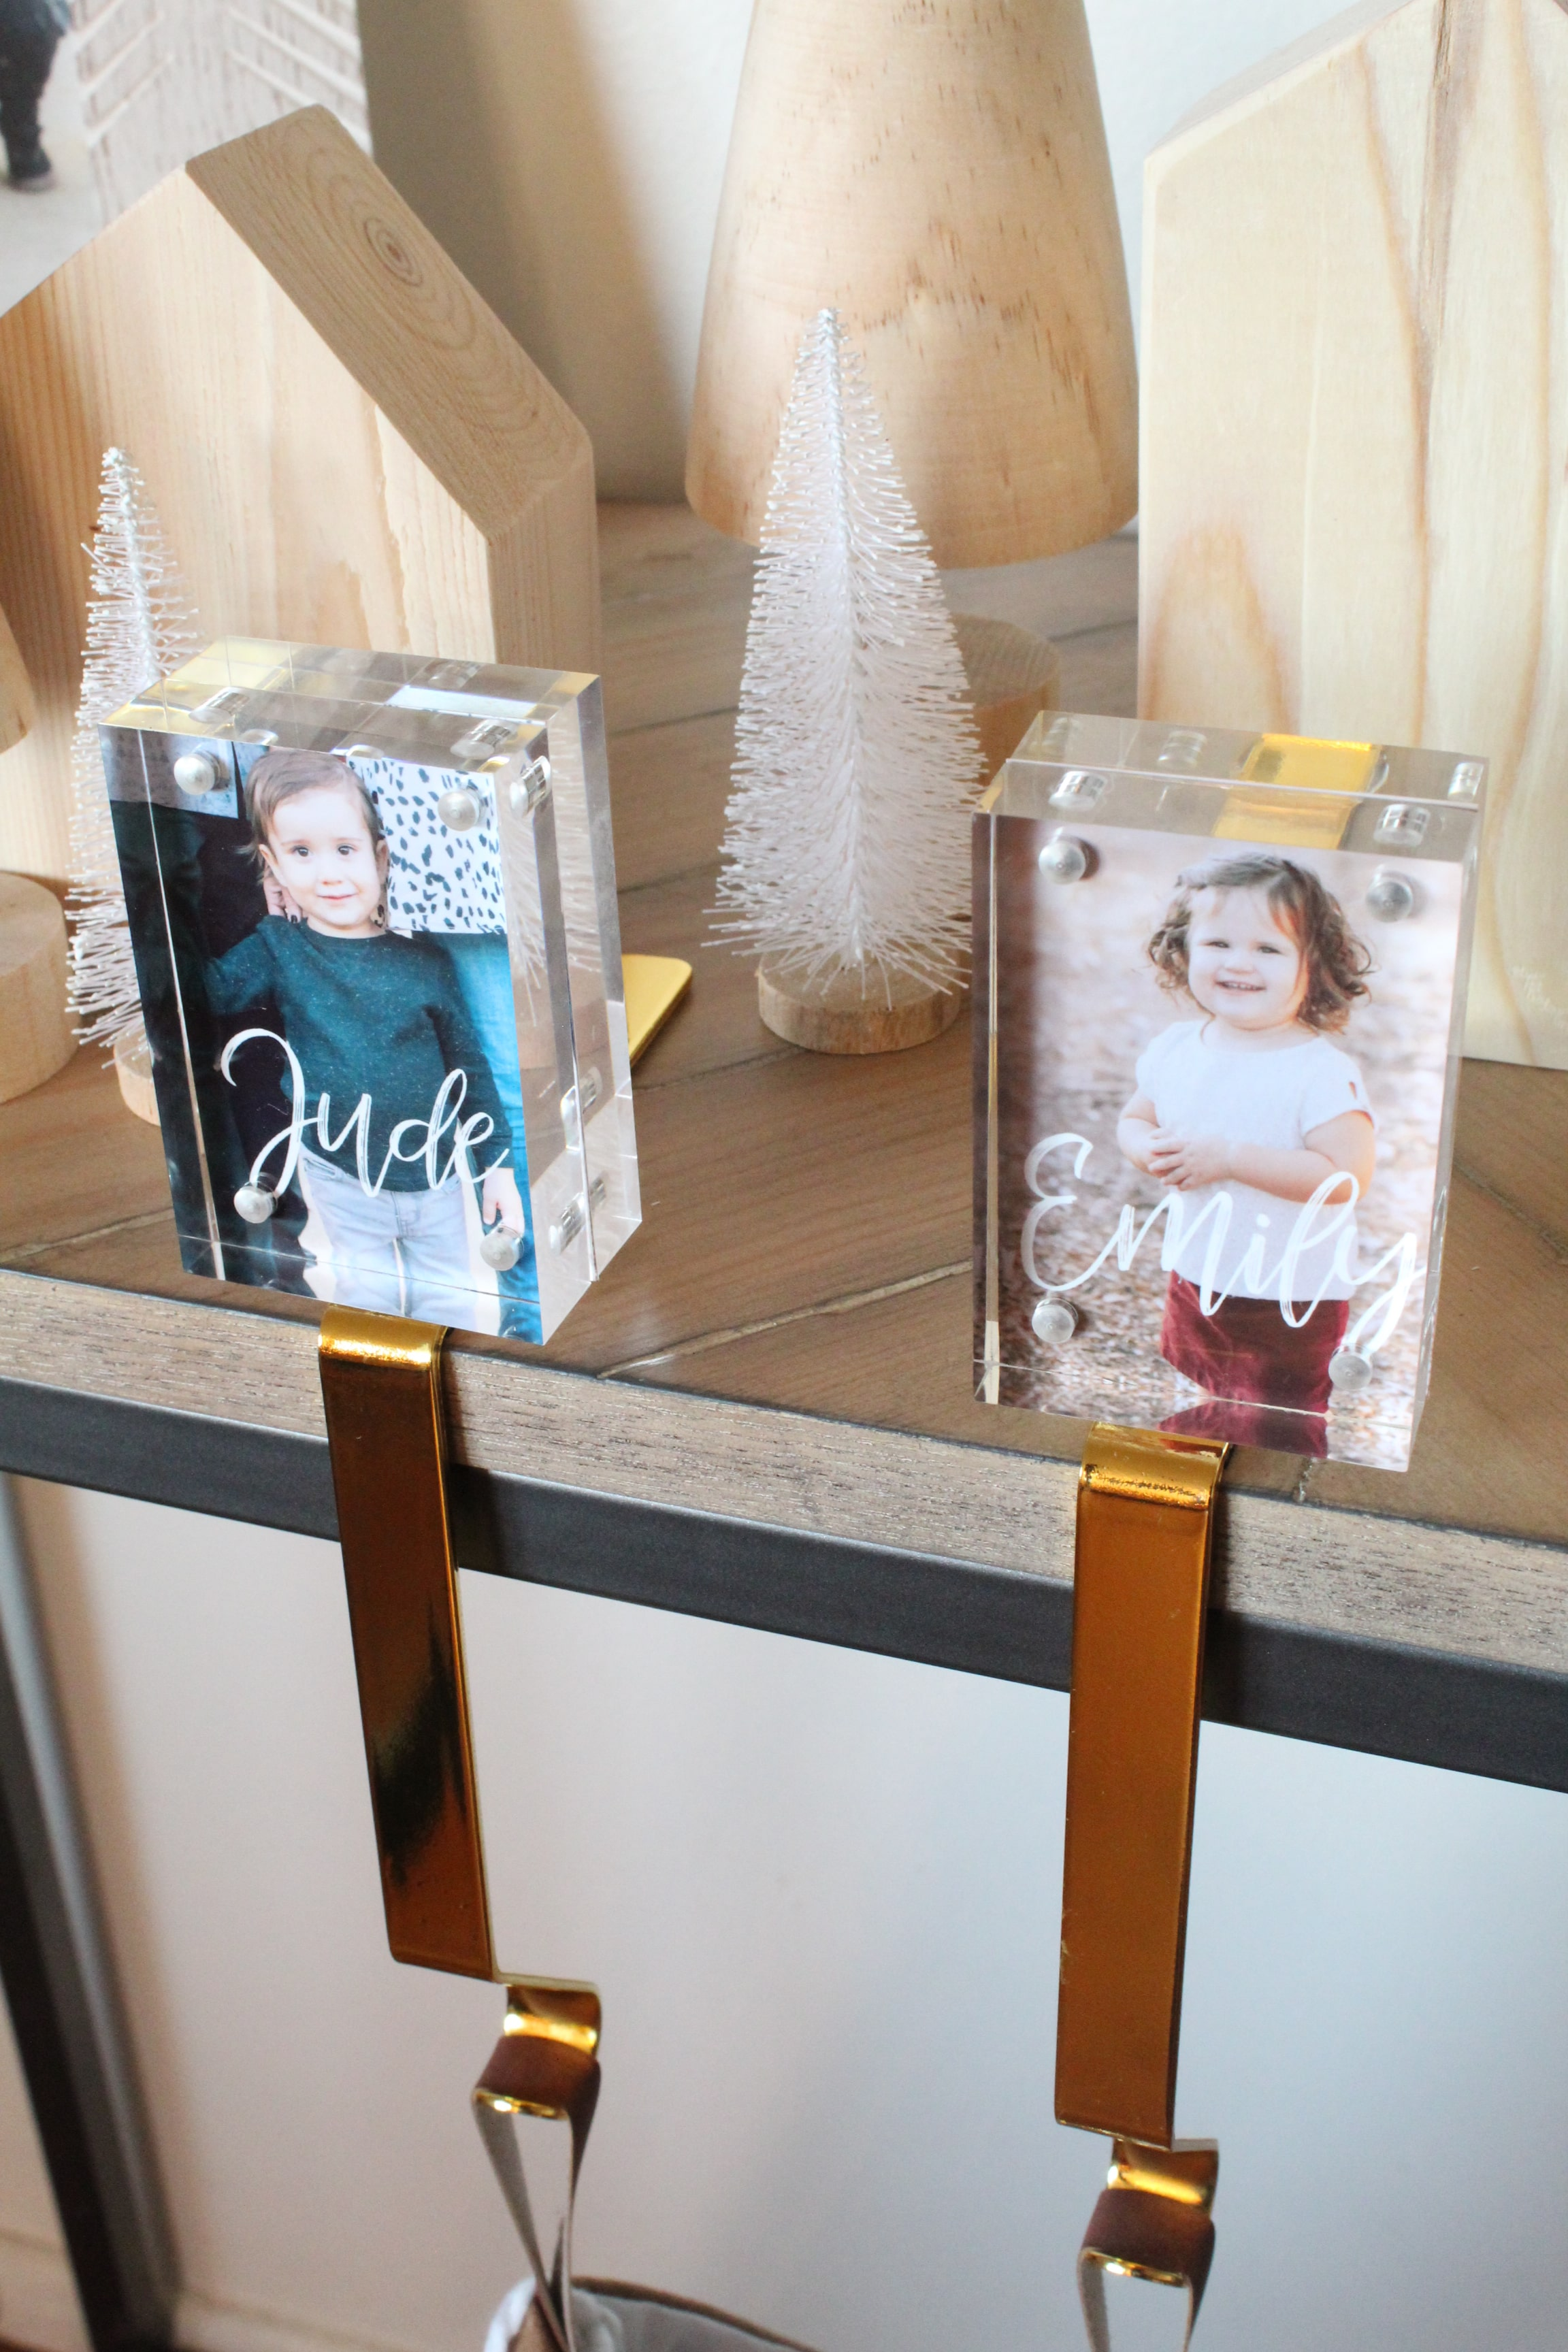 You don't want to miss these adorable DIY Framed Stocking Holders. You'll want to make one for every member of your family!